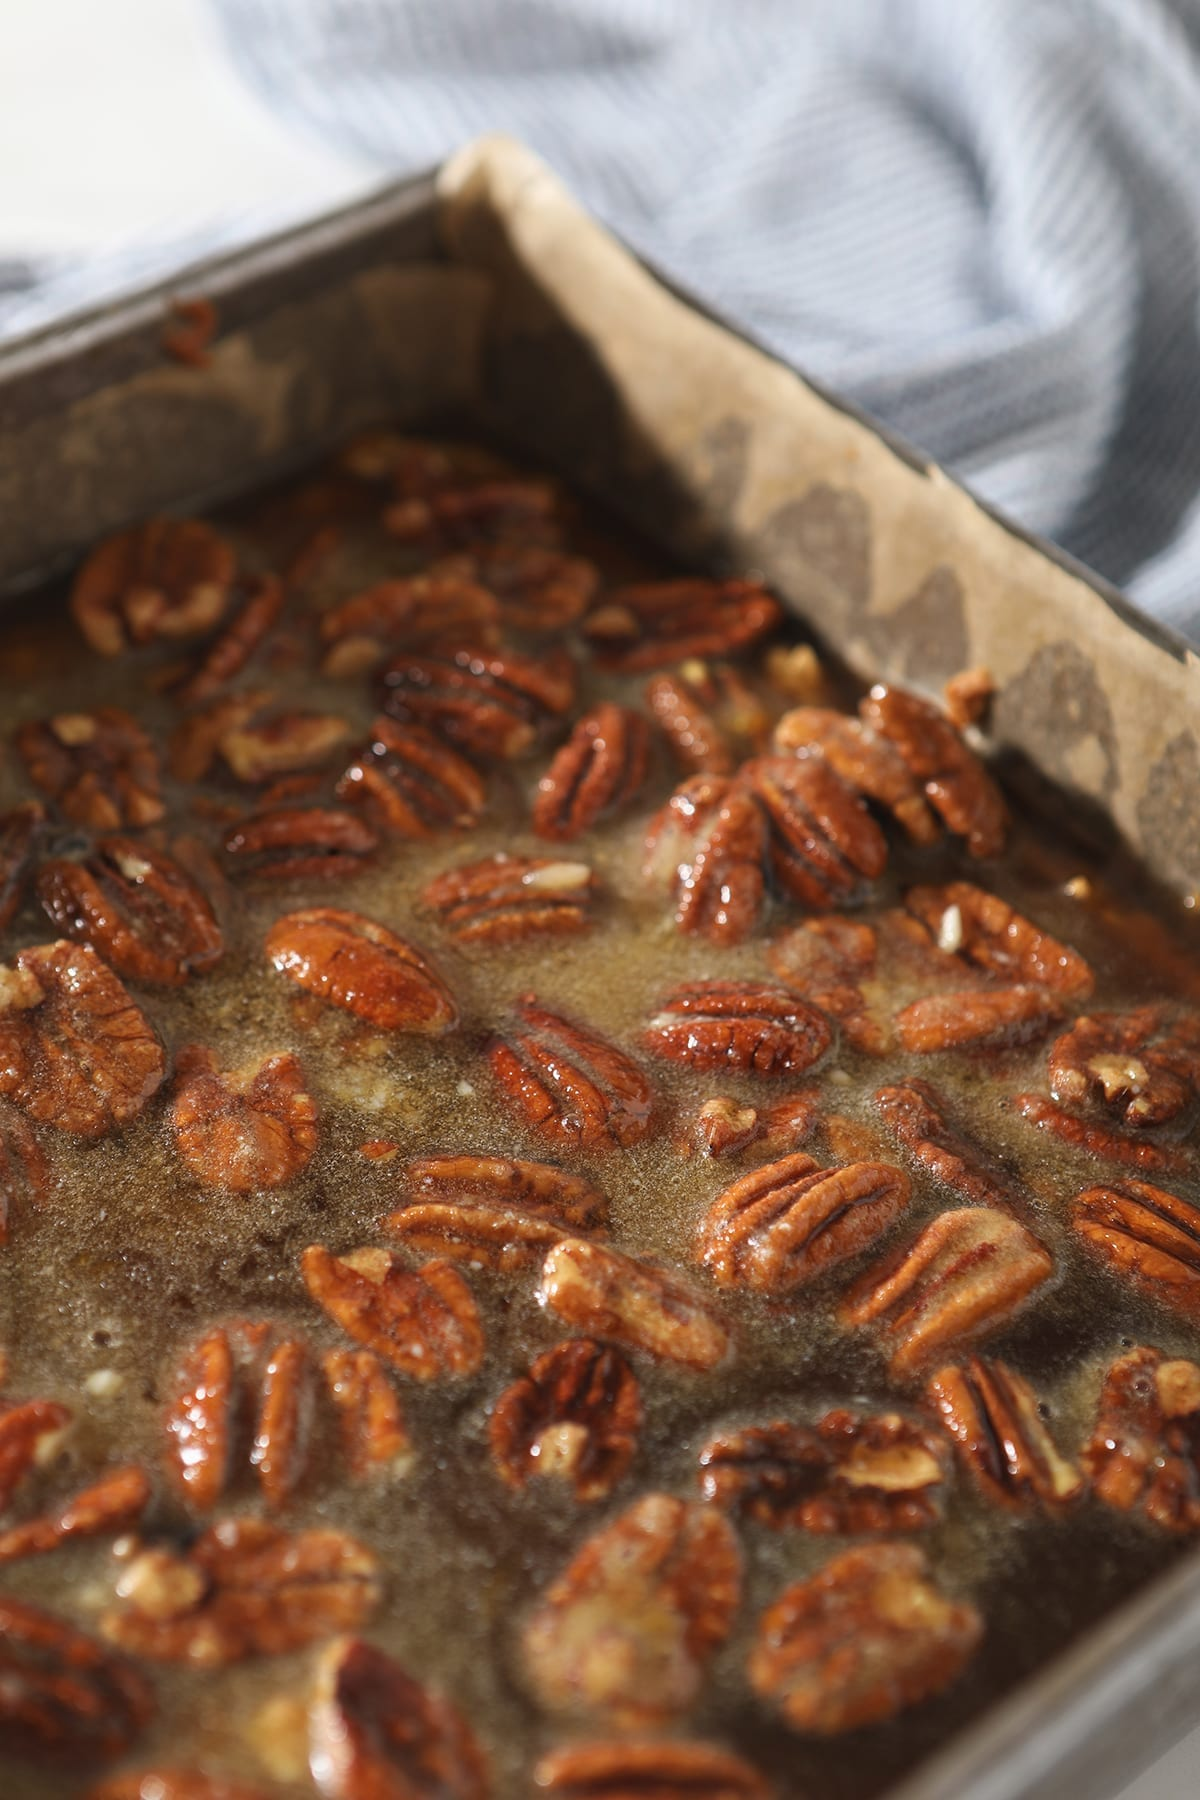 The Bourbon Pecan Pie Bars in a square baking dish before baking